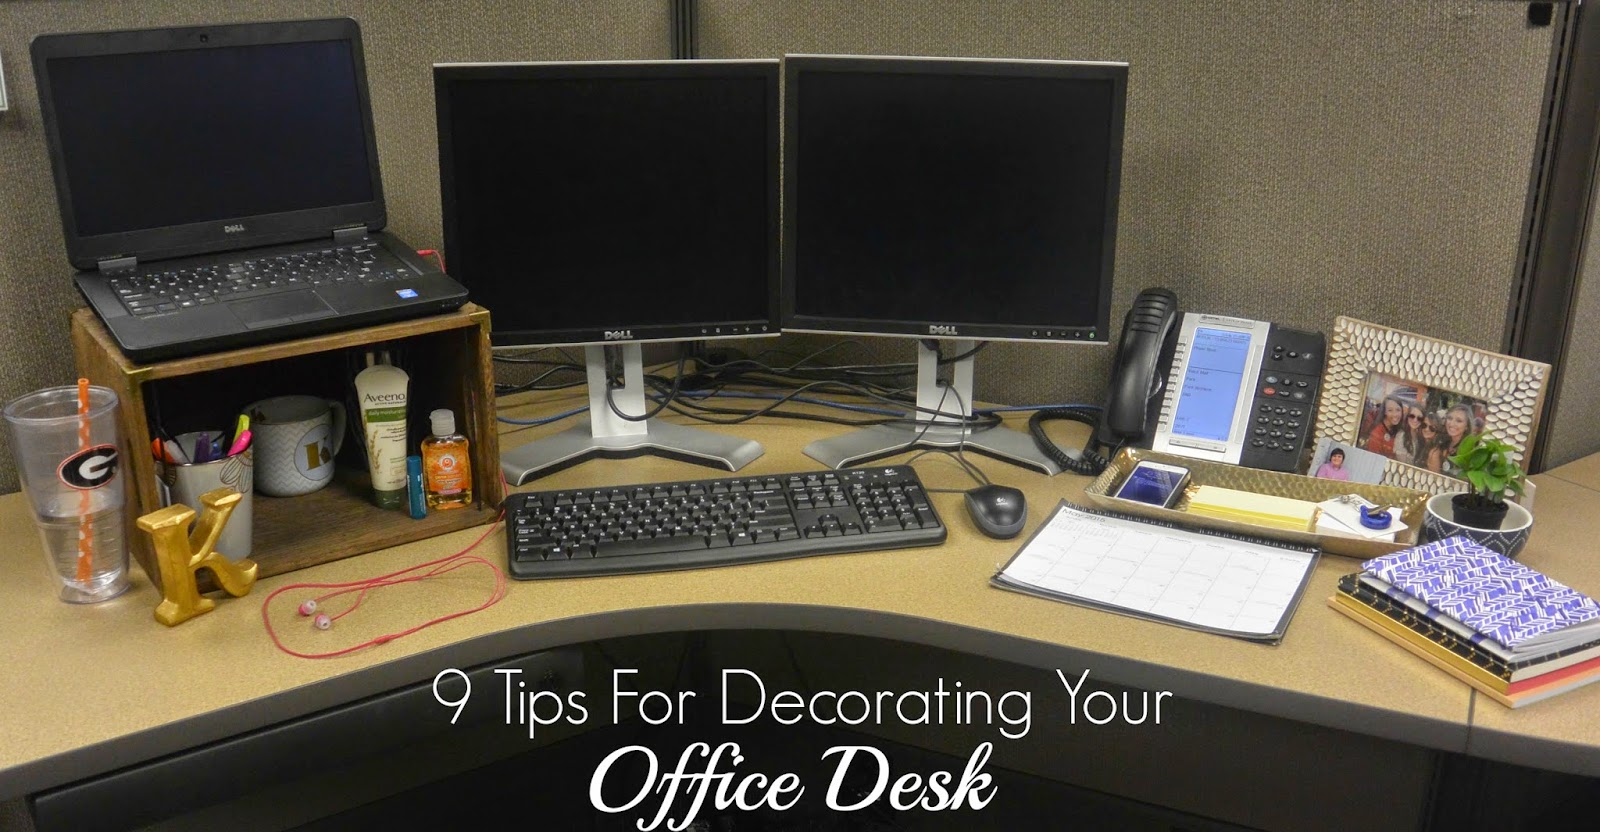 decorate office cubicle. Thursday, April 16, 2015. Make Your Office Cubicle Decorate